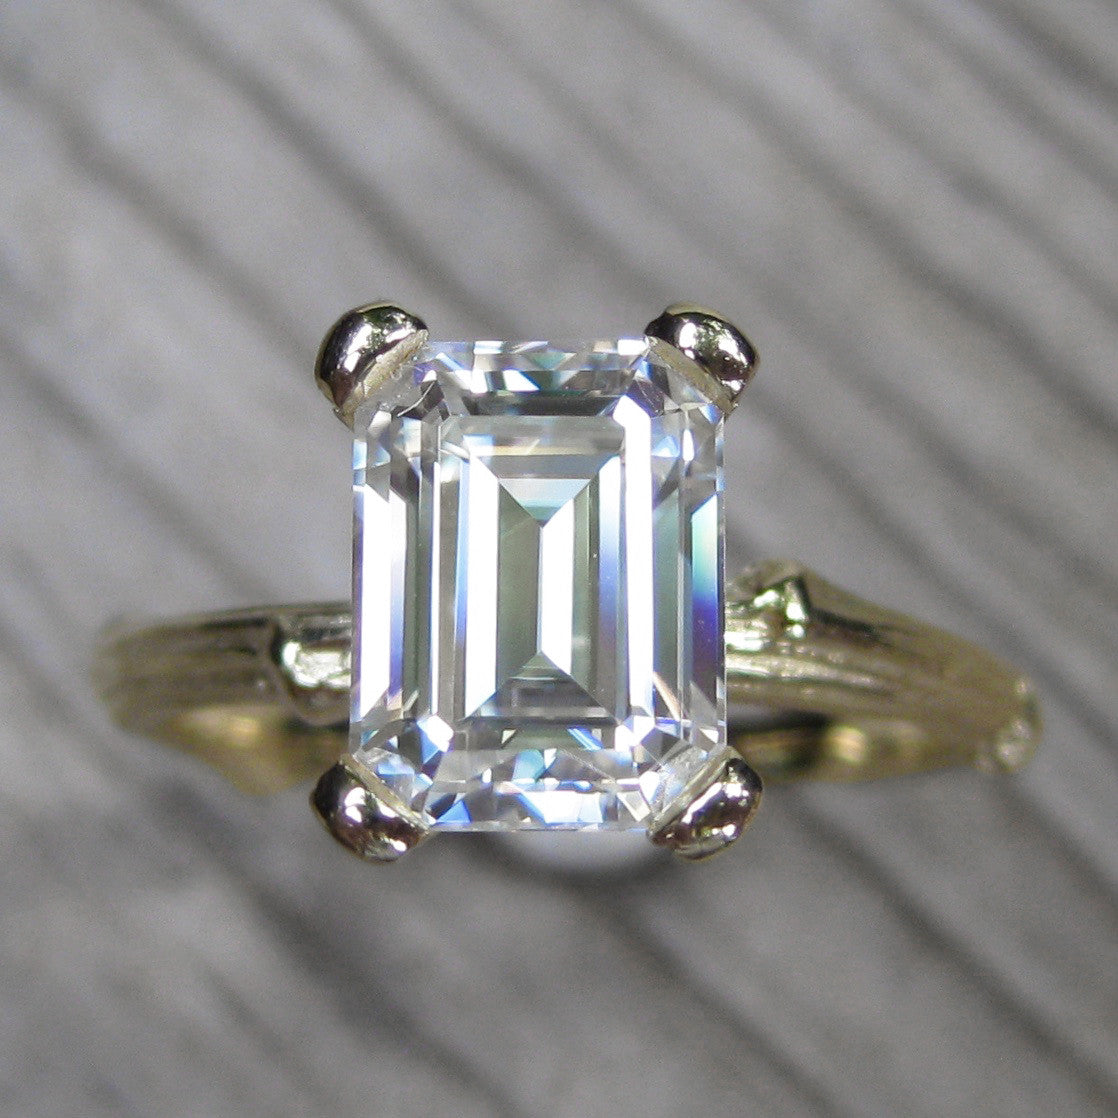 ... Emerald Cut Forever One™ or Supernova™ Moissanite Twig Engagement Ring  (1.75ct) ...